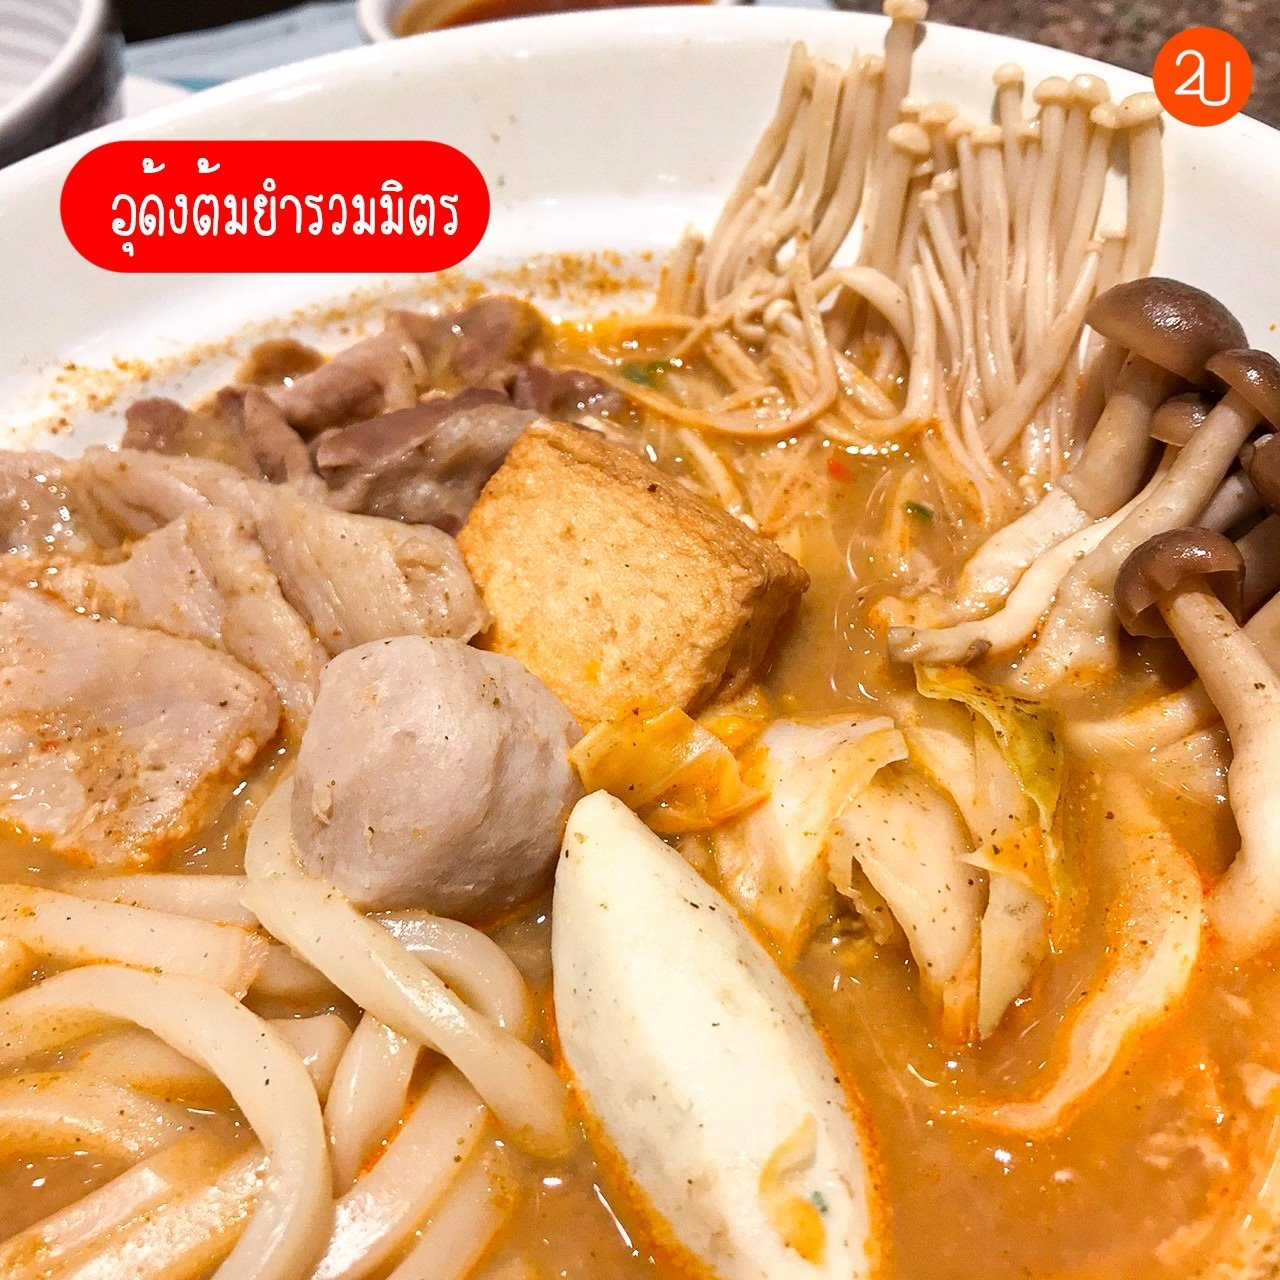 Mix Pork with Udon in Tomyum Soup